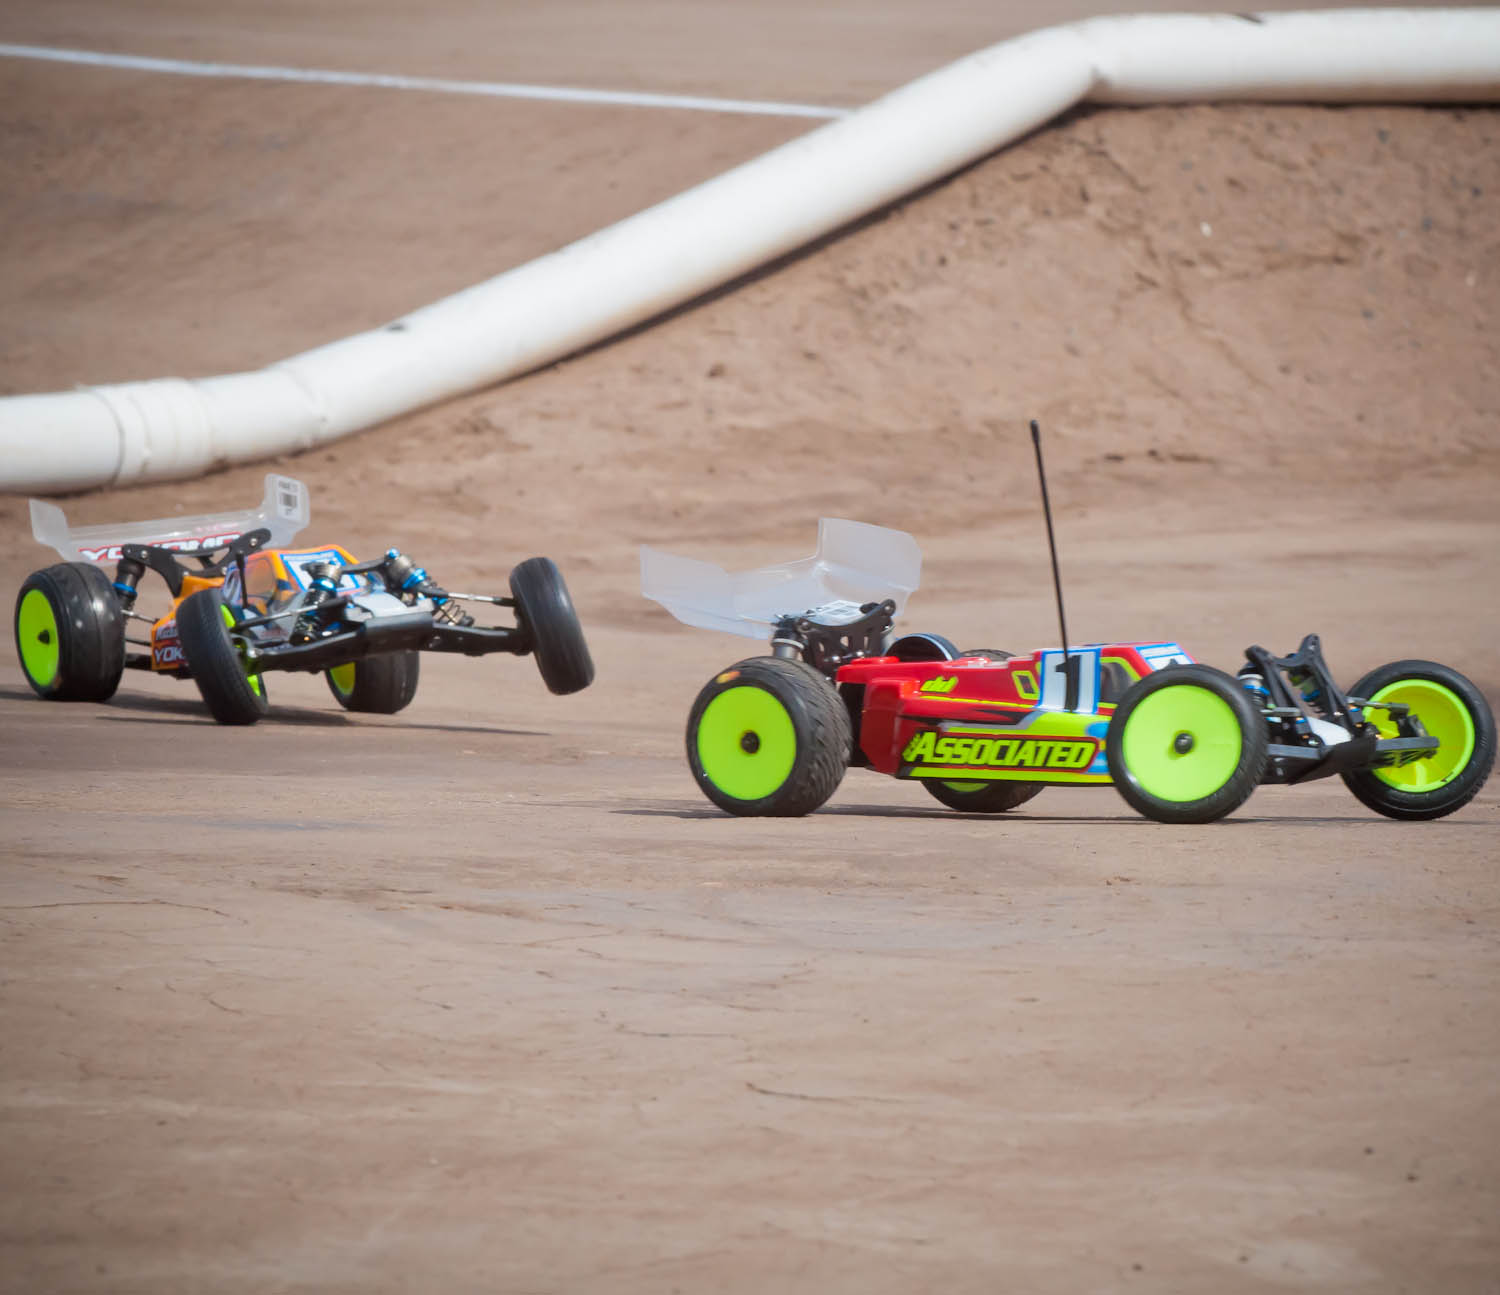 The British are coming! Lee Martin Wins Round Two at the 2013 IFMAR Worlds